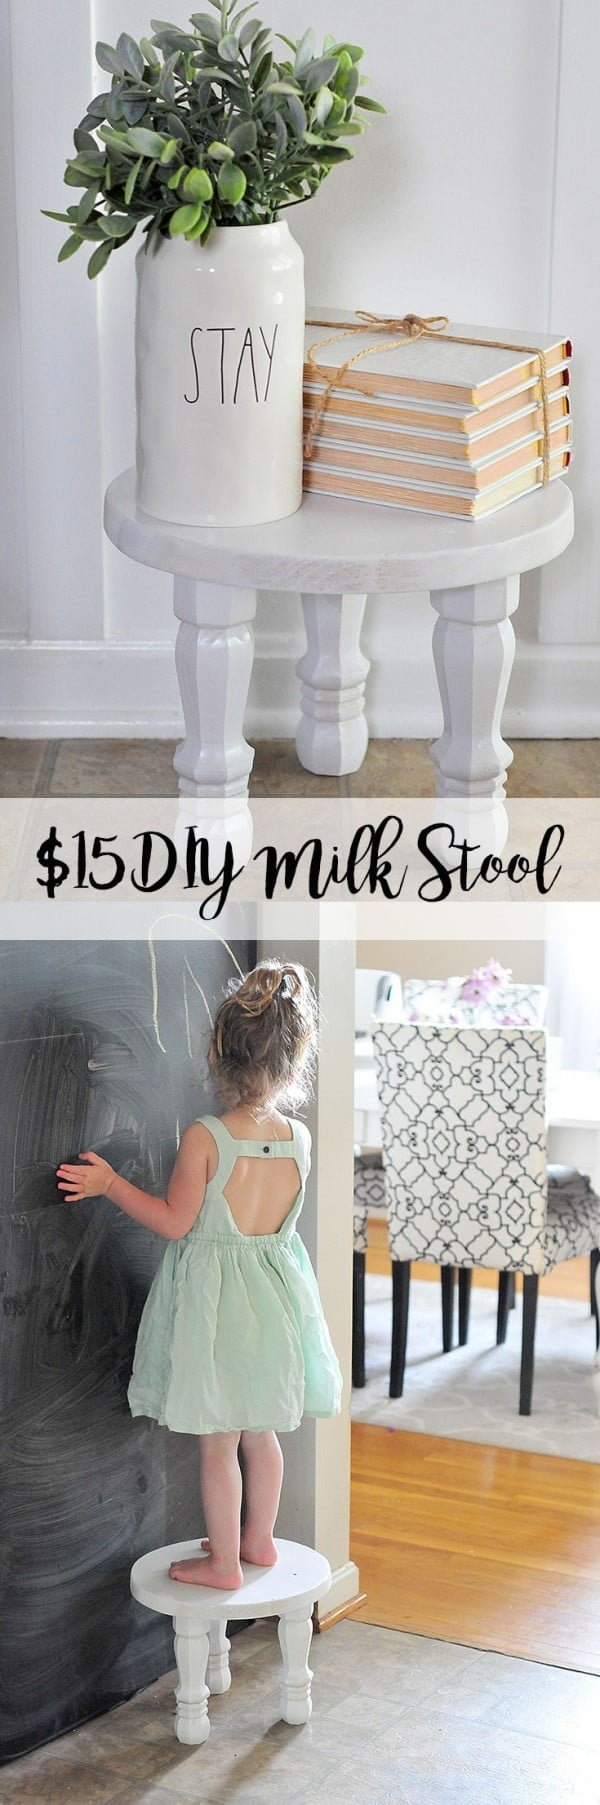 How to make a   milk stool. Looks easy enough!